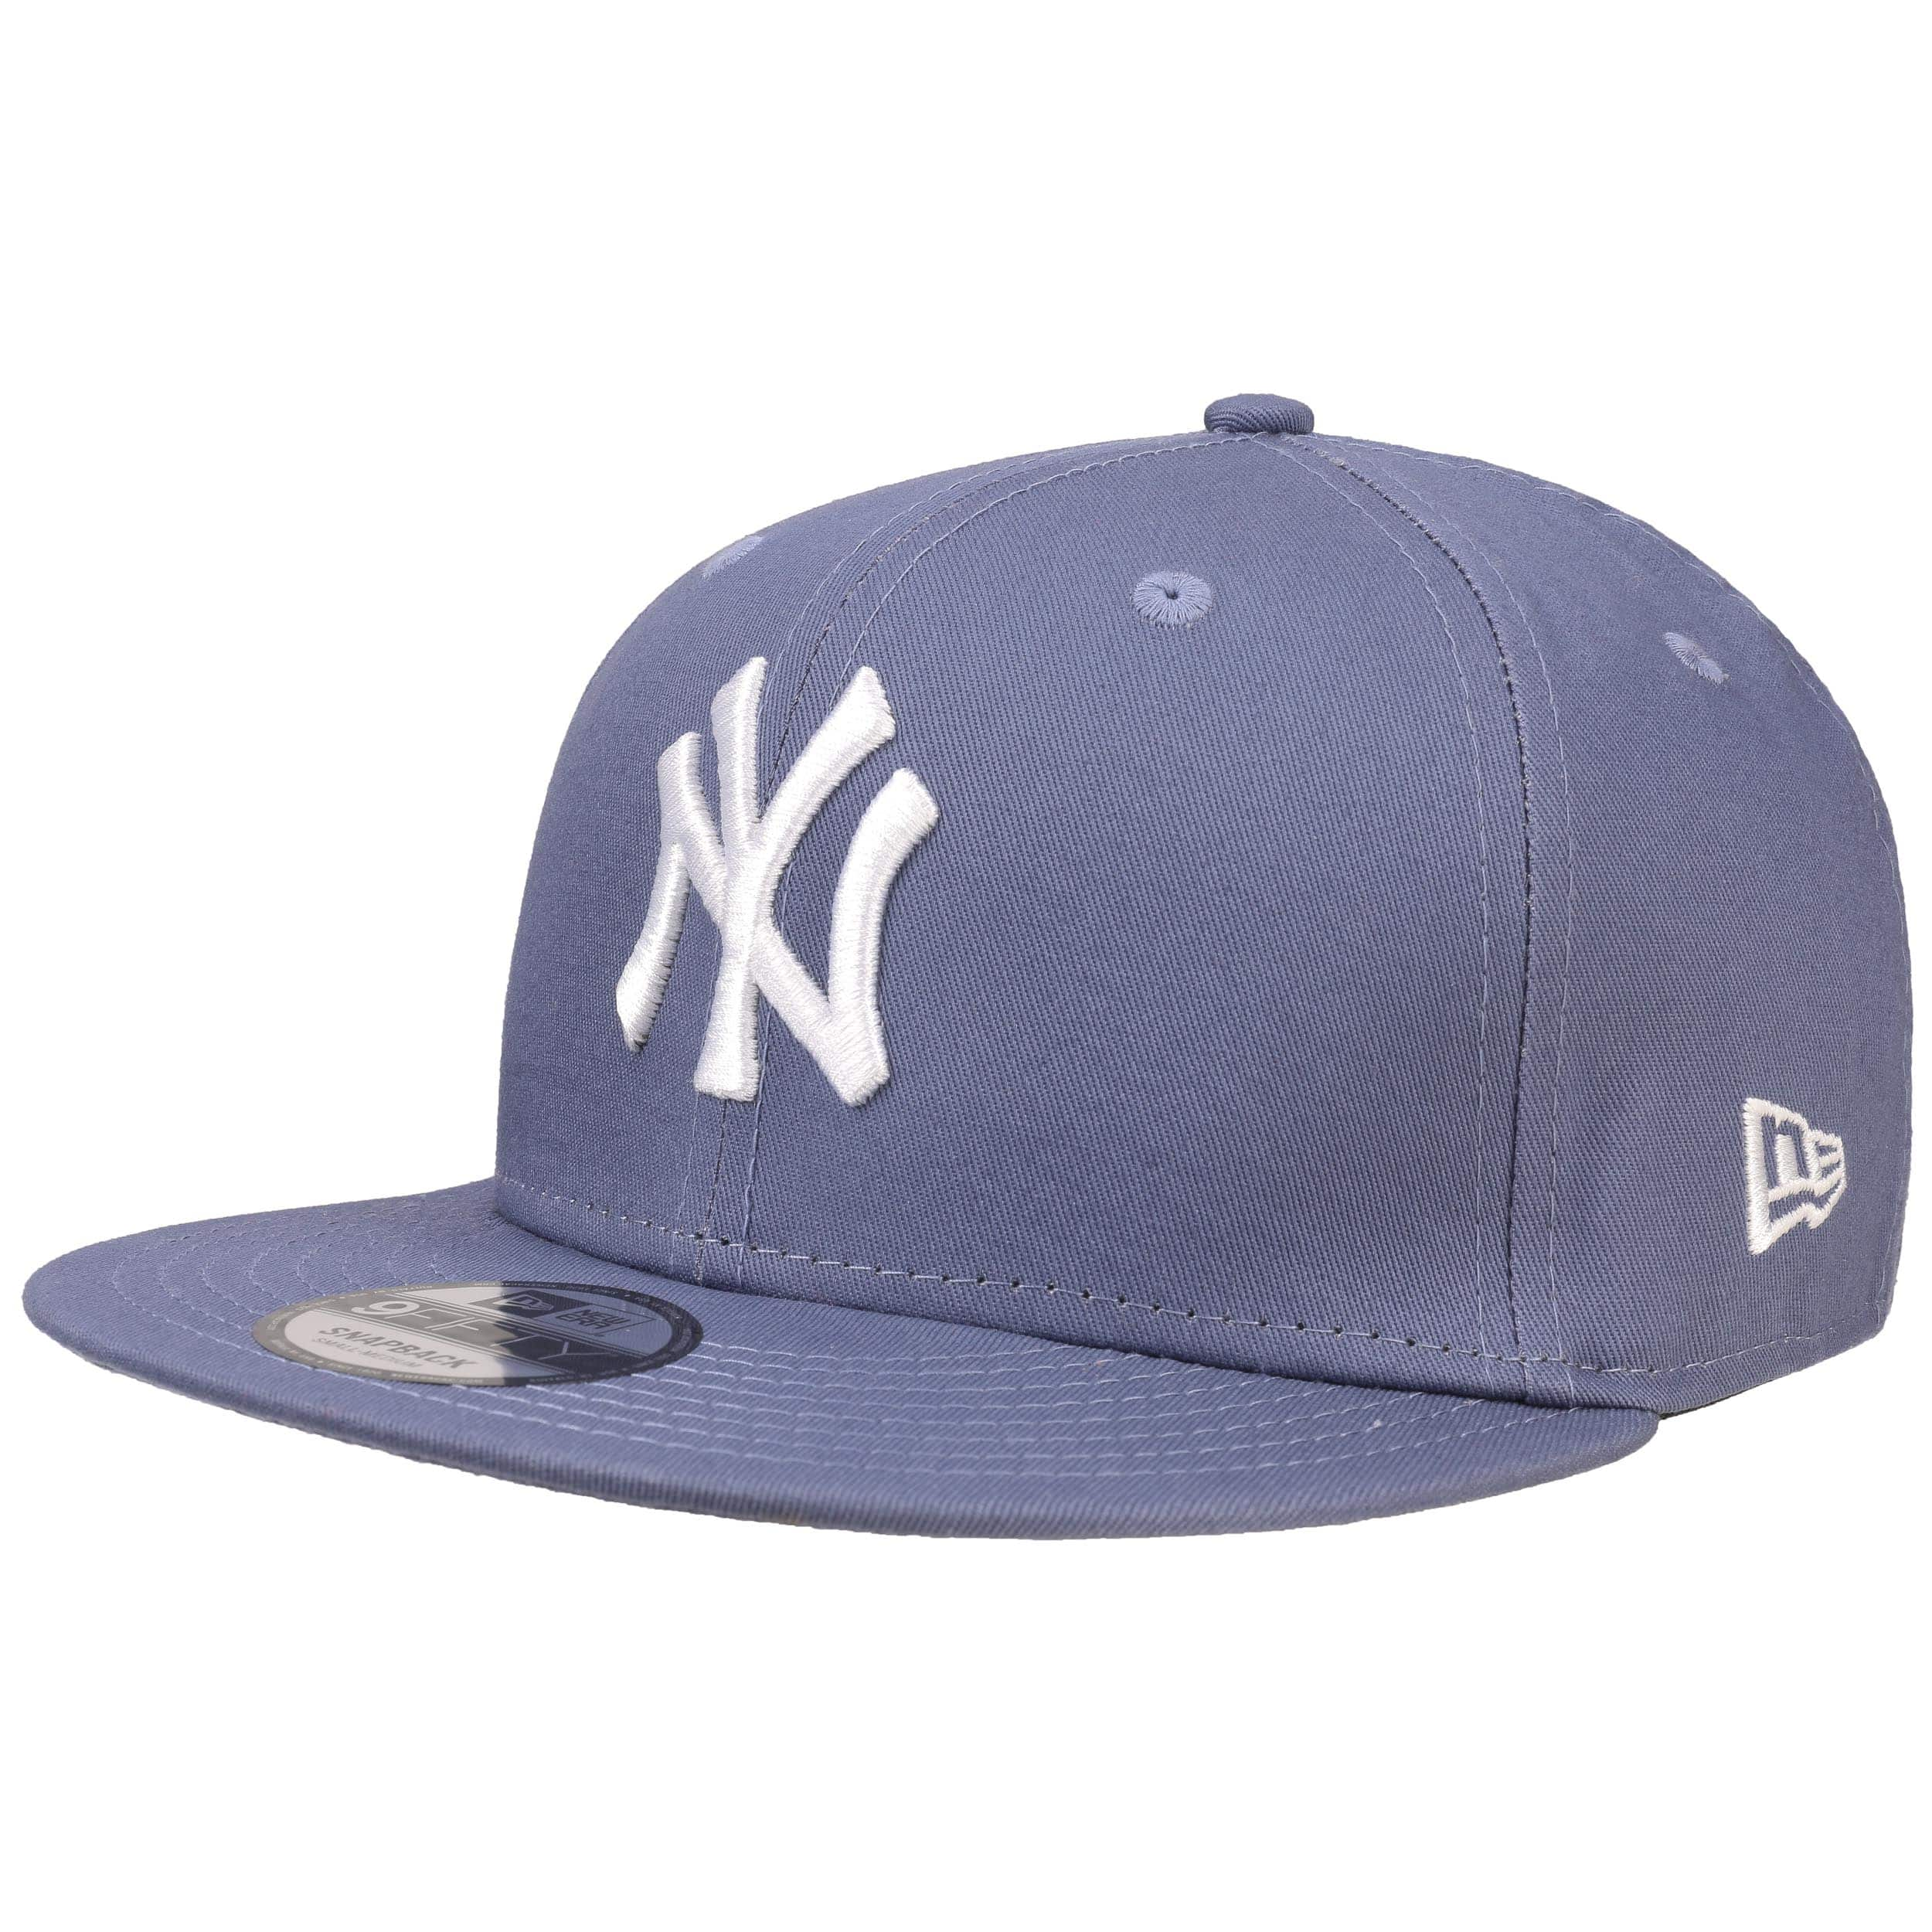 Gorra 9Fifty Ess YOUTH Yankees by New Era - Gorras - sombreroshop.es 96d94c96307